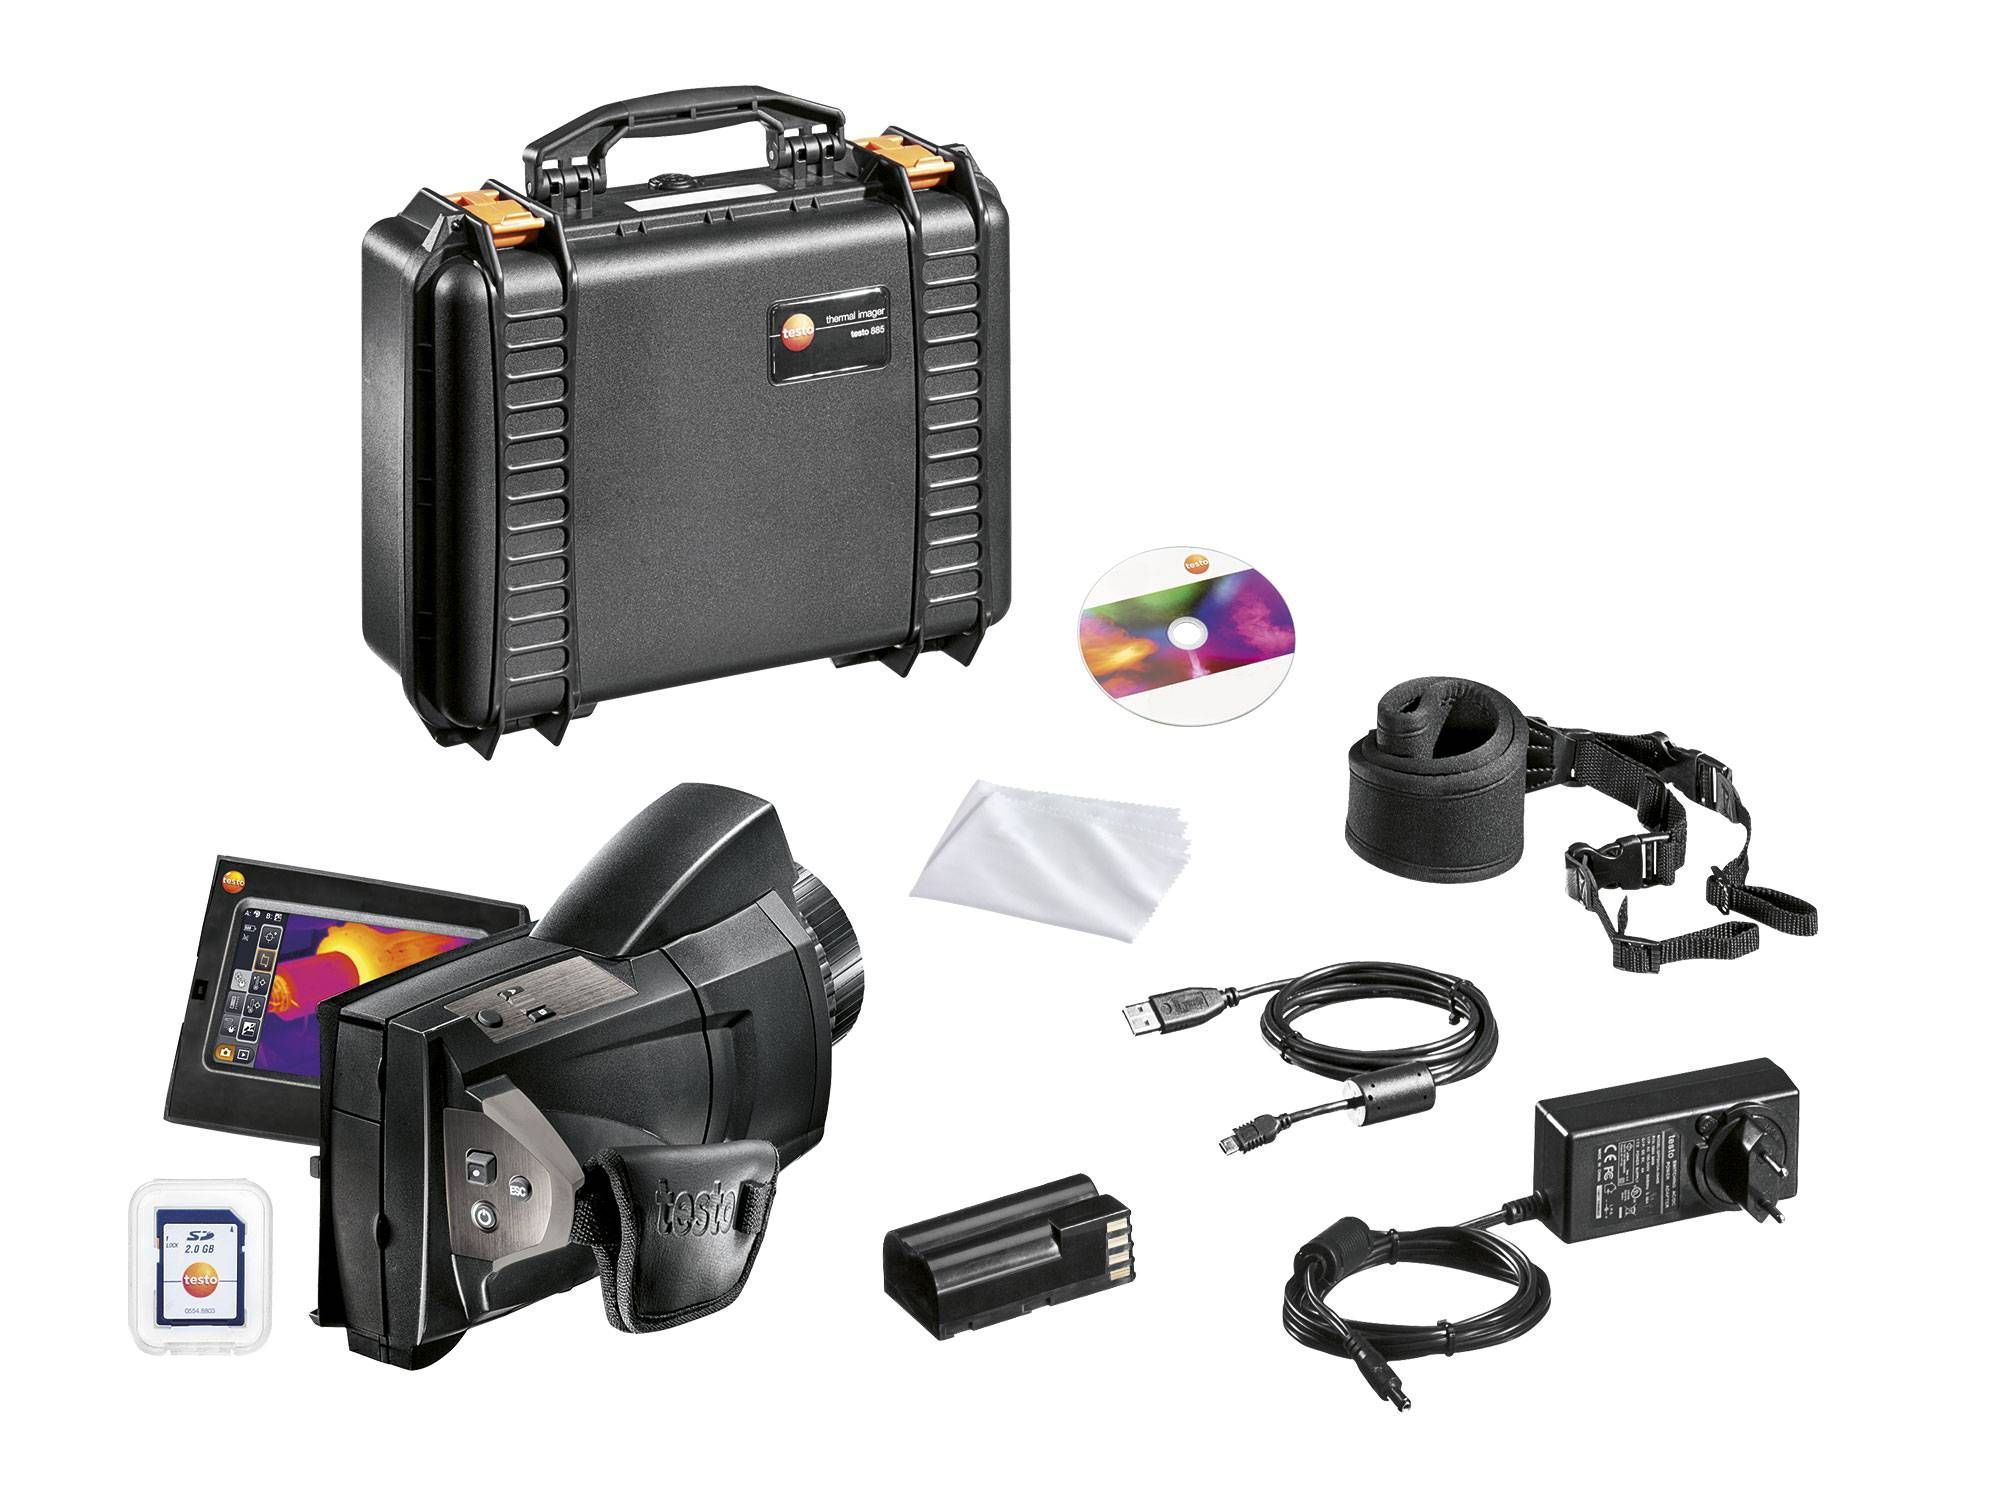 testo 885 - Thermal imager - Delivery scope